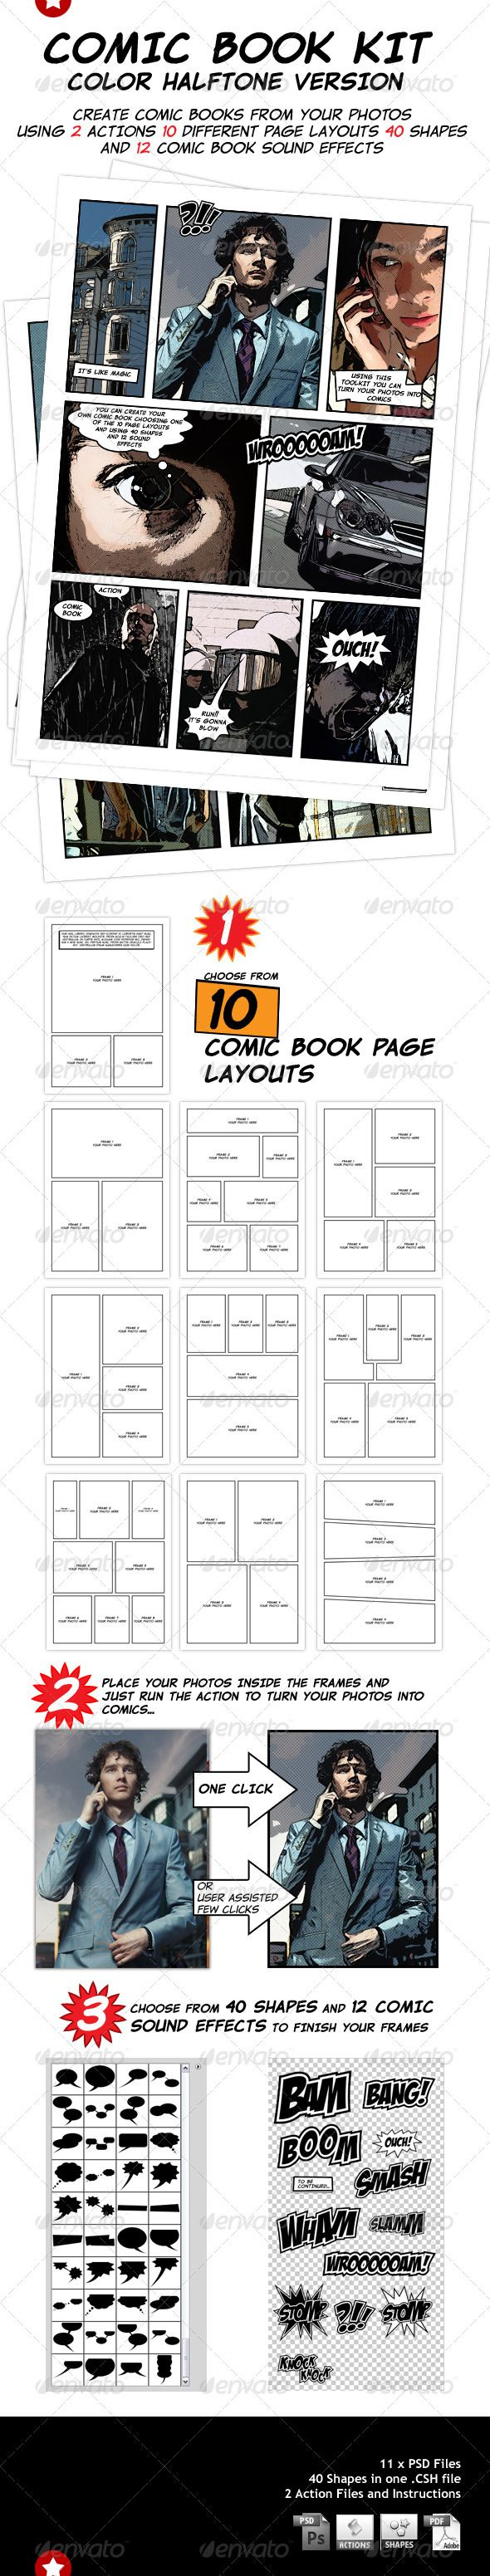 You can choose from 10 comic book page layout templates - Place your own photos inside smart objects and run the action to turn them into comics - Choose from 40 shapes of bubbles and banners and type your text inside them. - Then choose from 12 comic book sound effects and enrich your comic book pages.    This pack includes: 11 PSD files 40 shapes in a Photoshop .CSH file Two .ATN files and Instructions